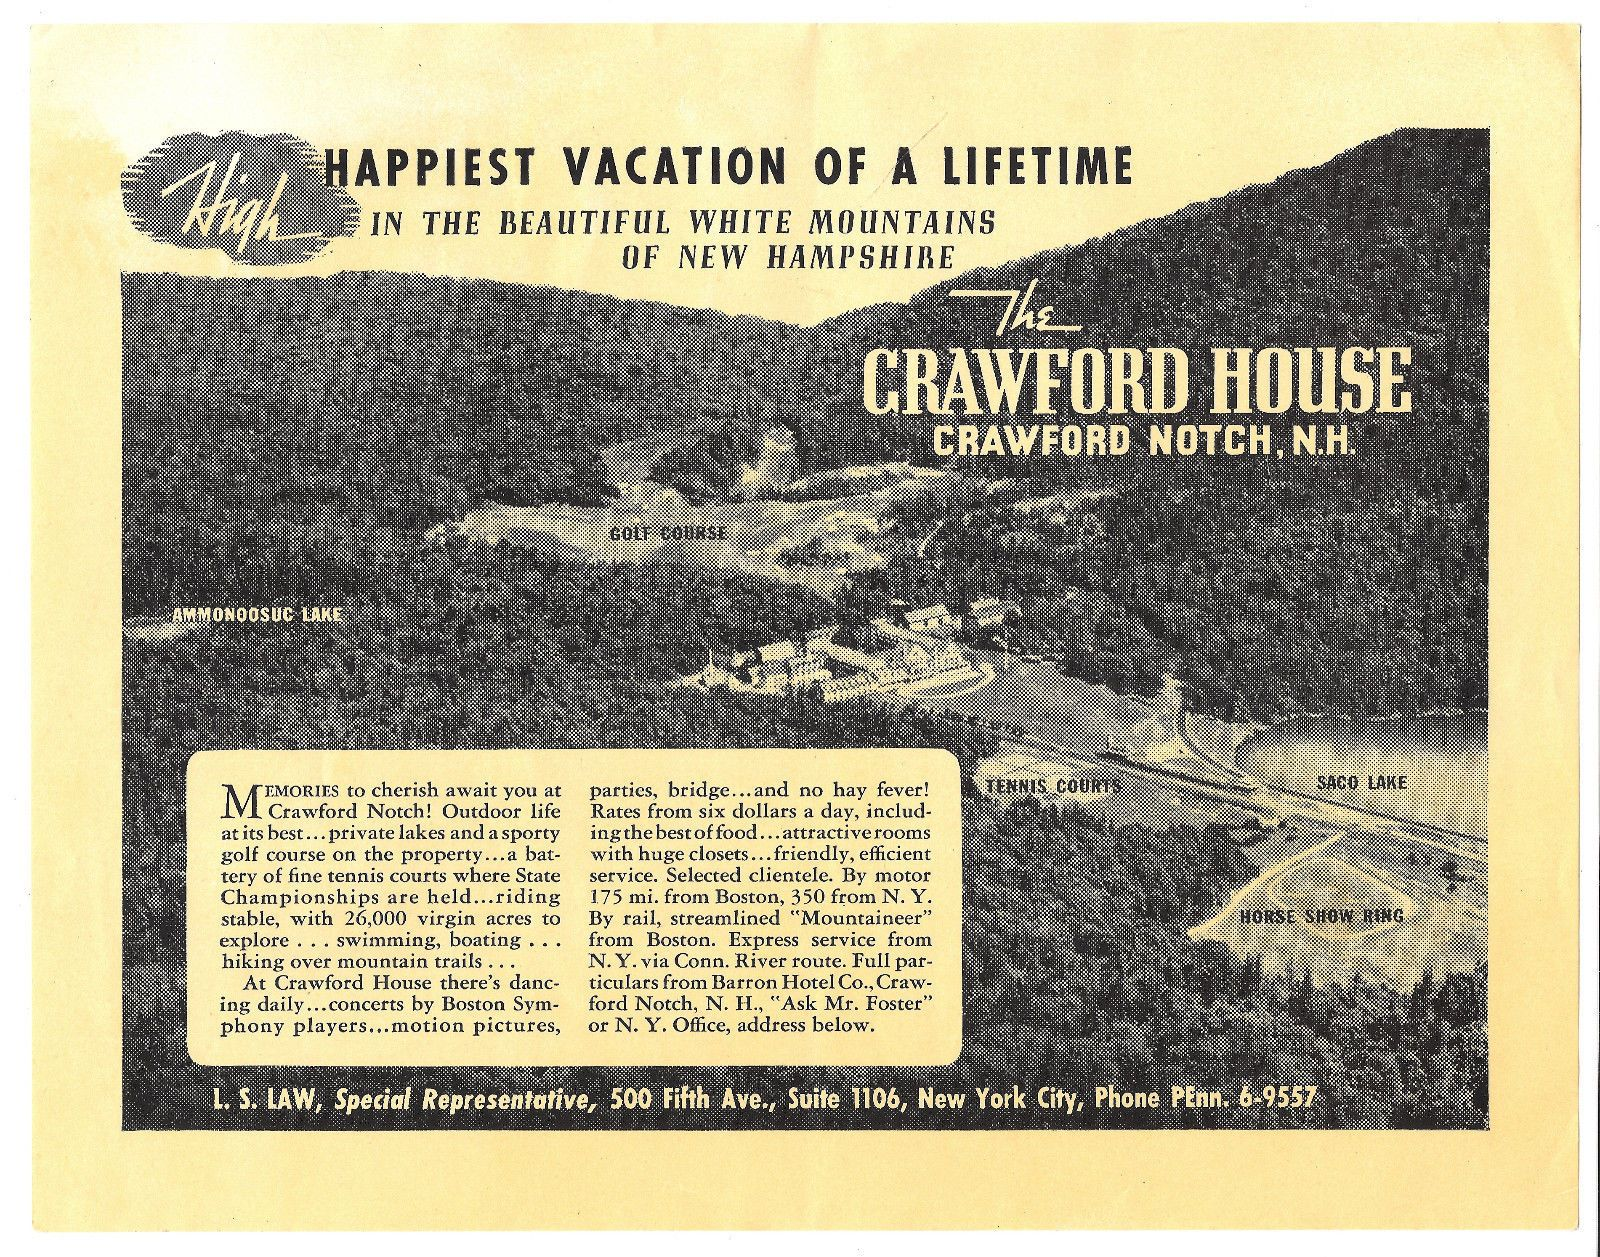 Vintage WHITE MOUNTAINS NH Tourism Flyer  CRAWFORD HOUSE Golf Course Horse Ring https://t.co/YbNjjNGnxZ https://t.co/pErJ4wuSsg